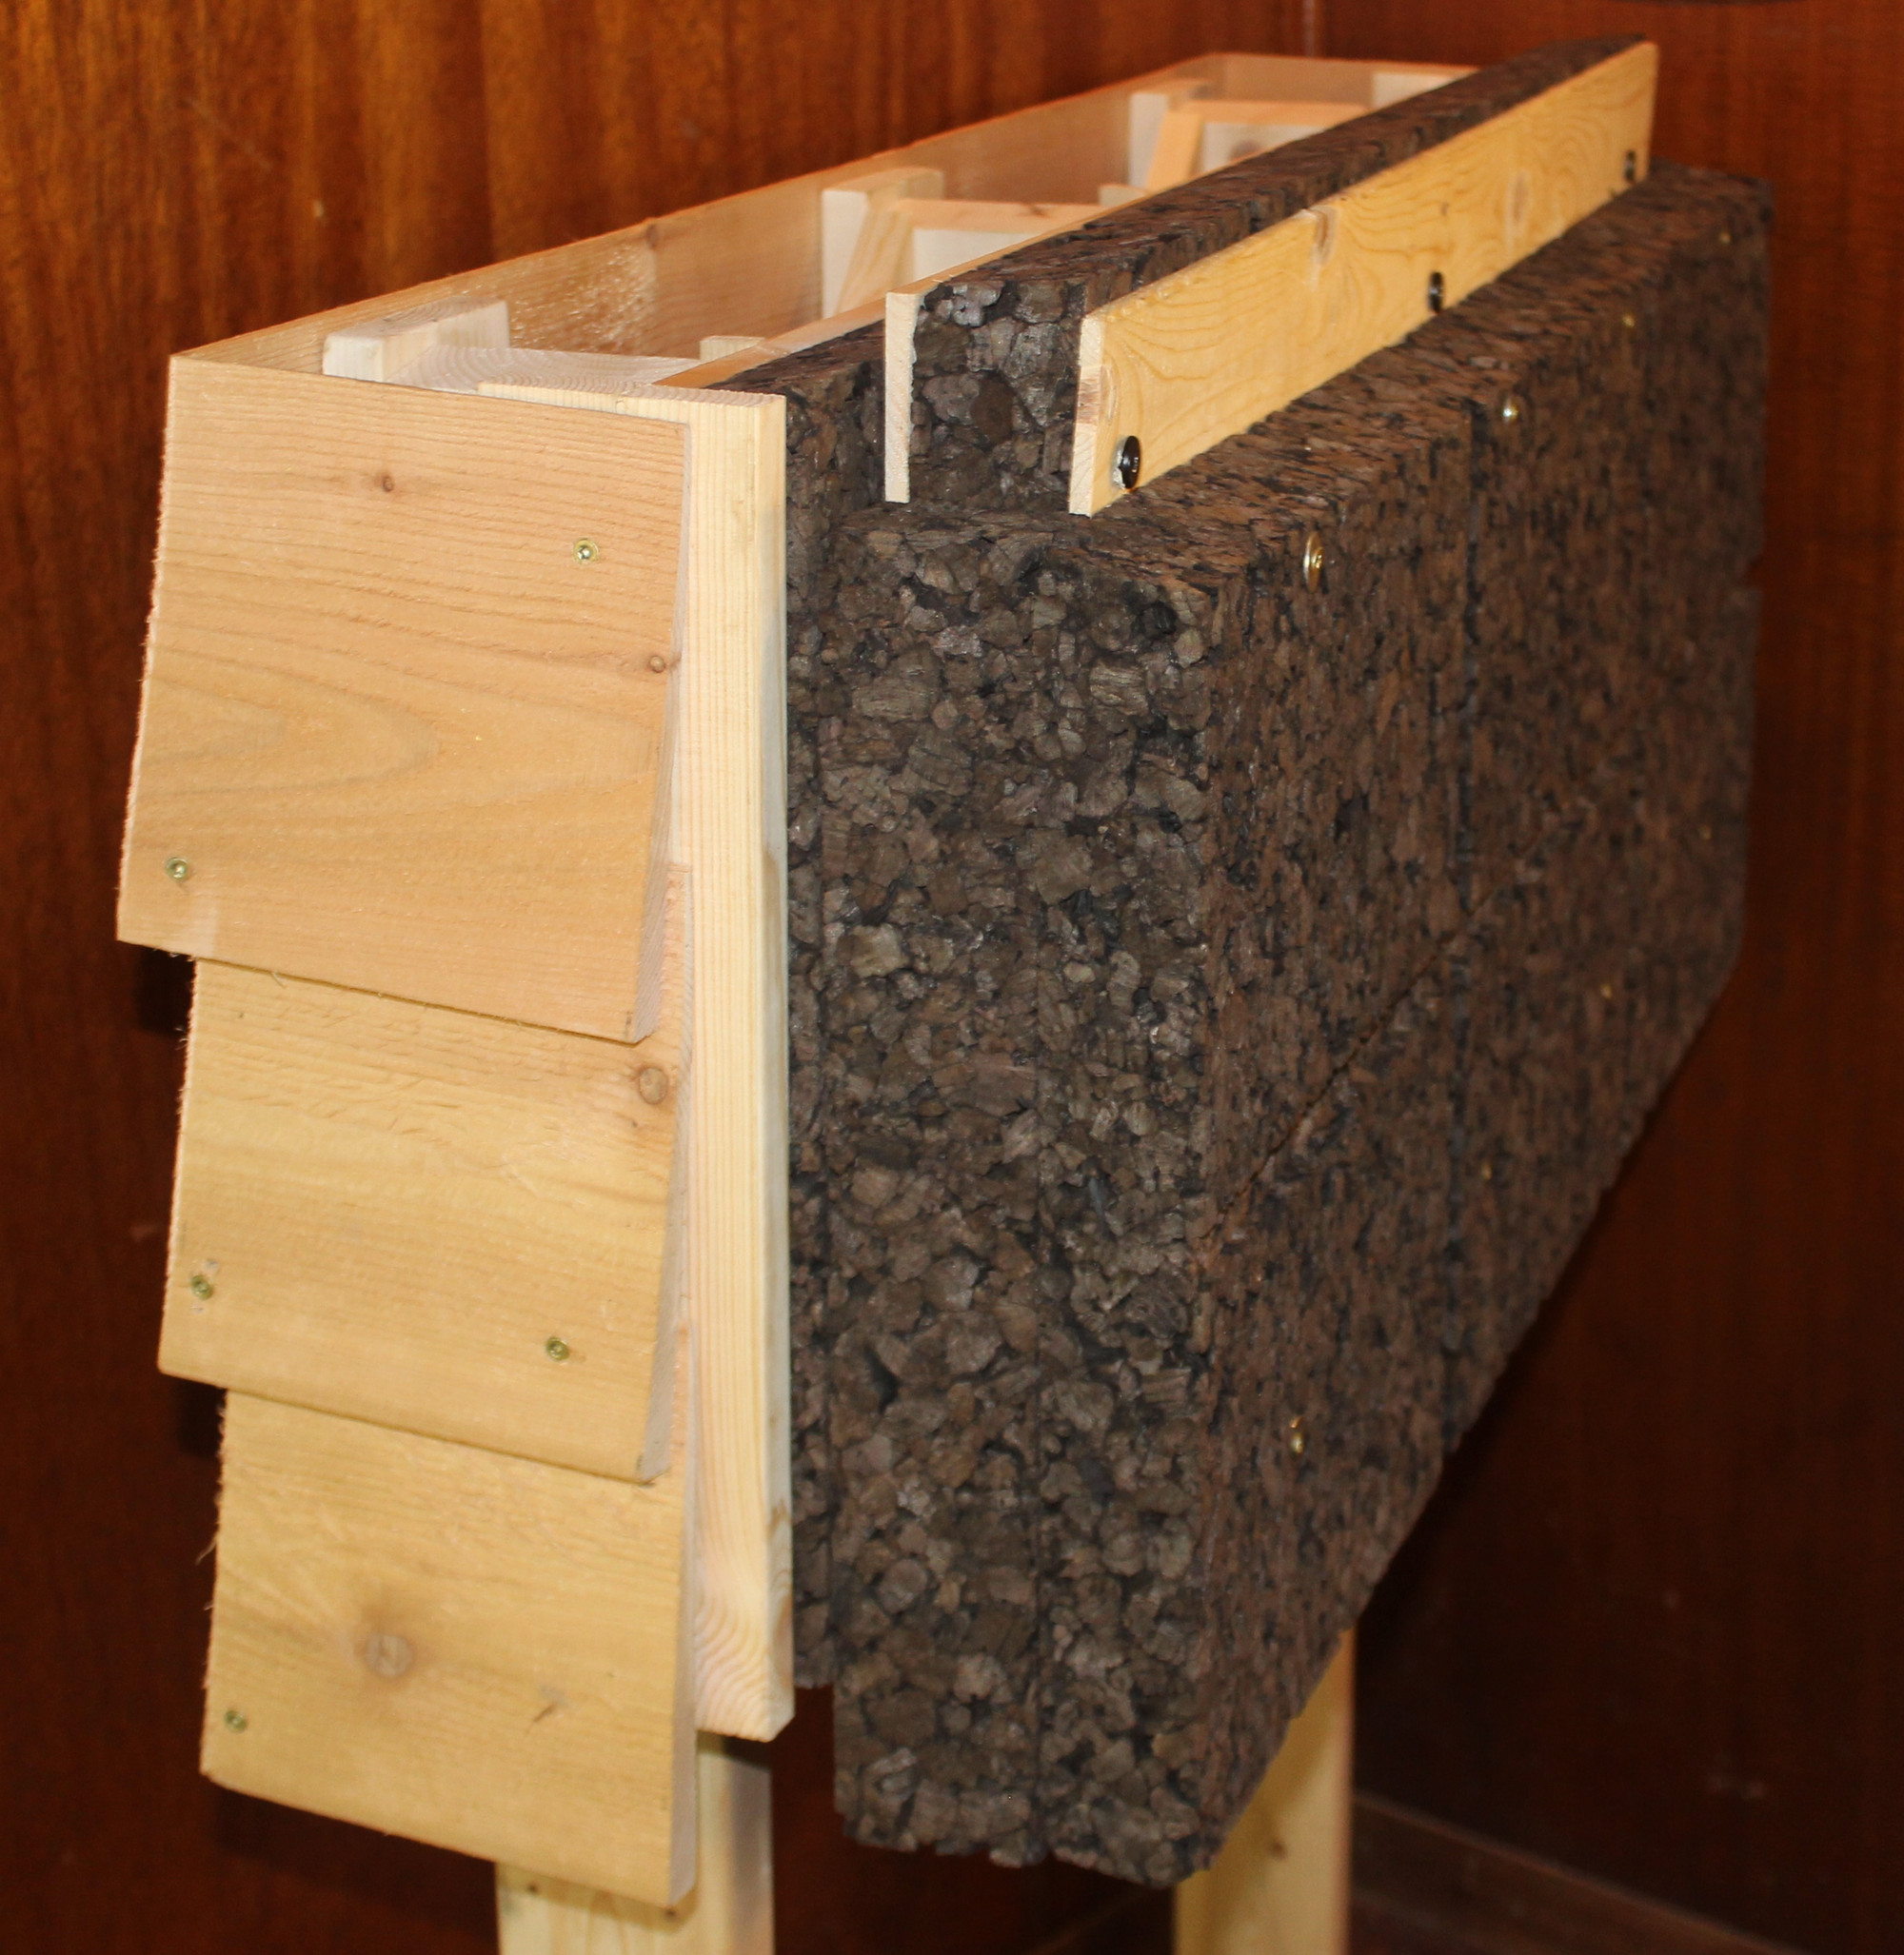 Sustainable Building Products finalists create next generation of sustainable building products